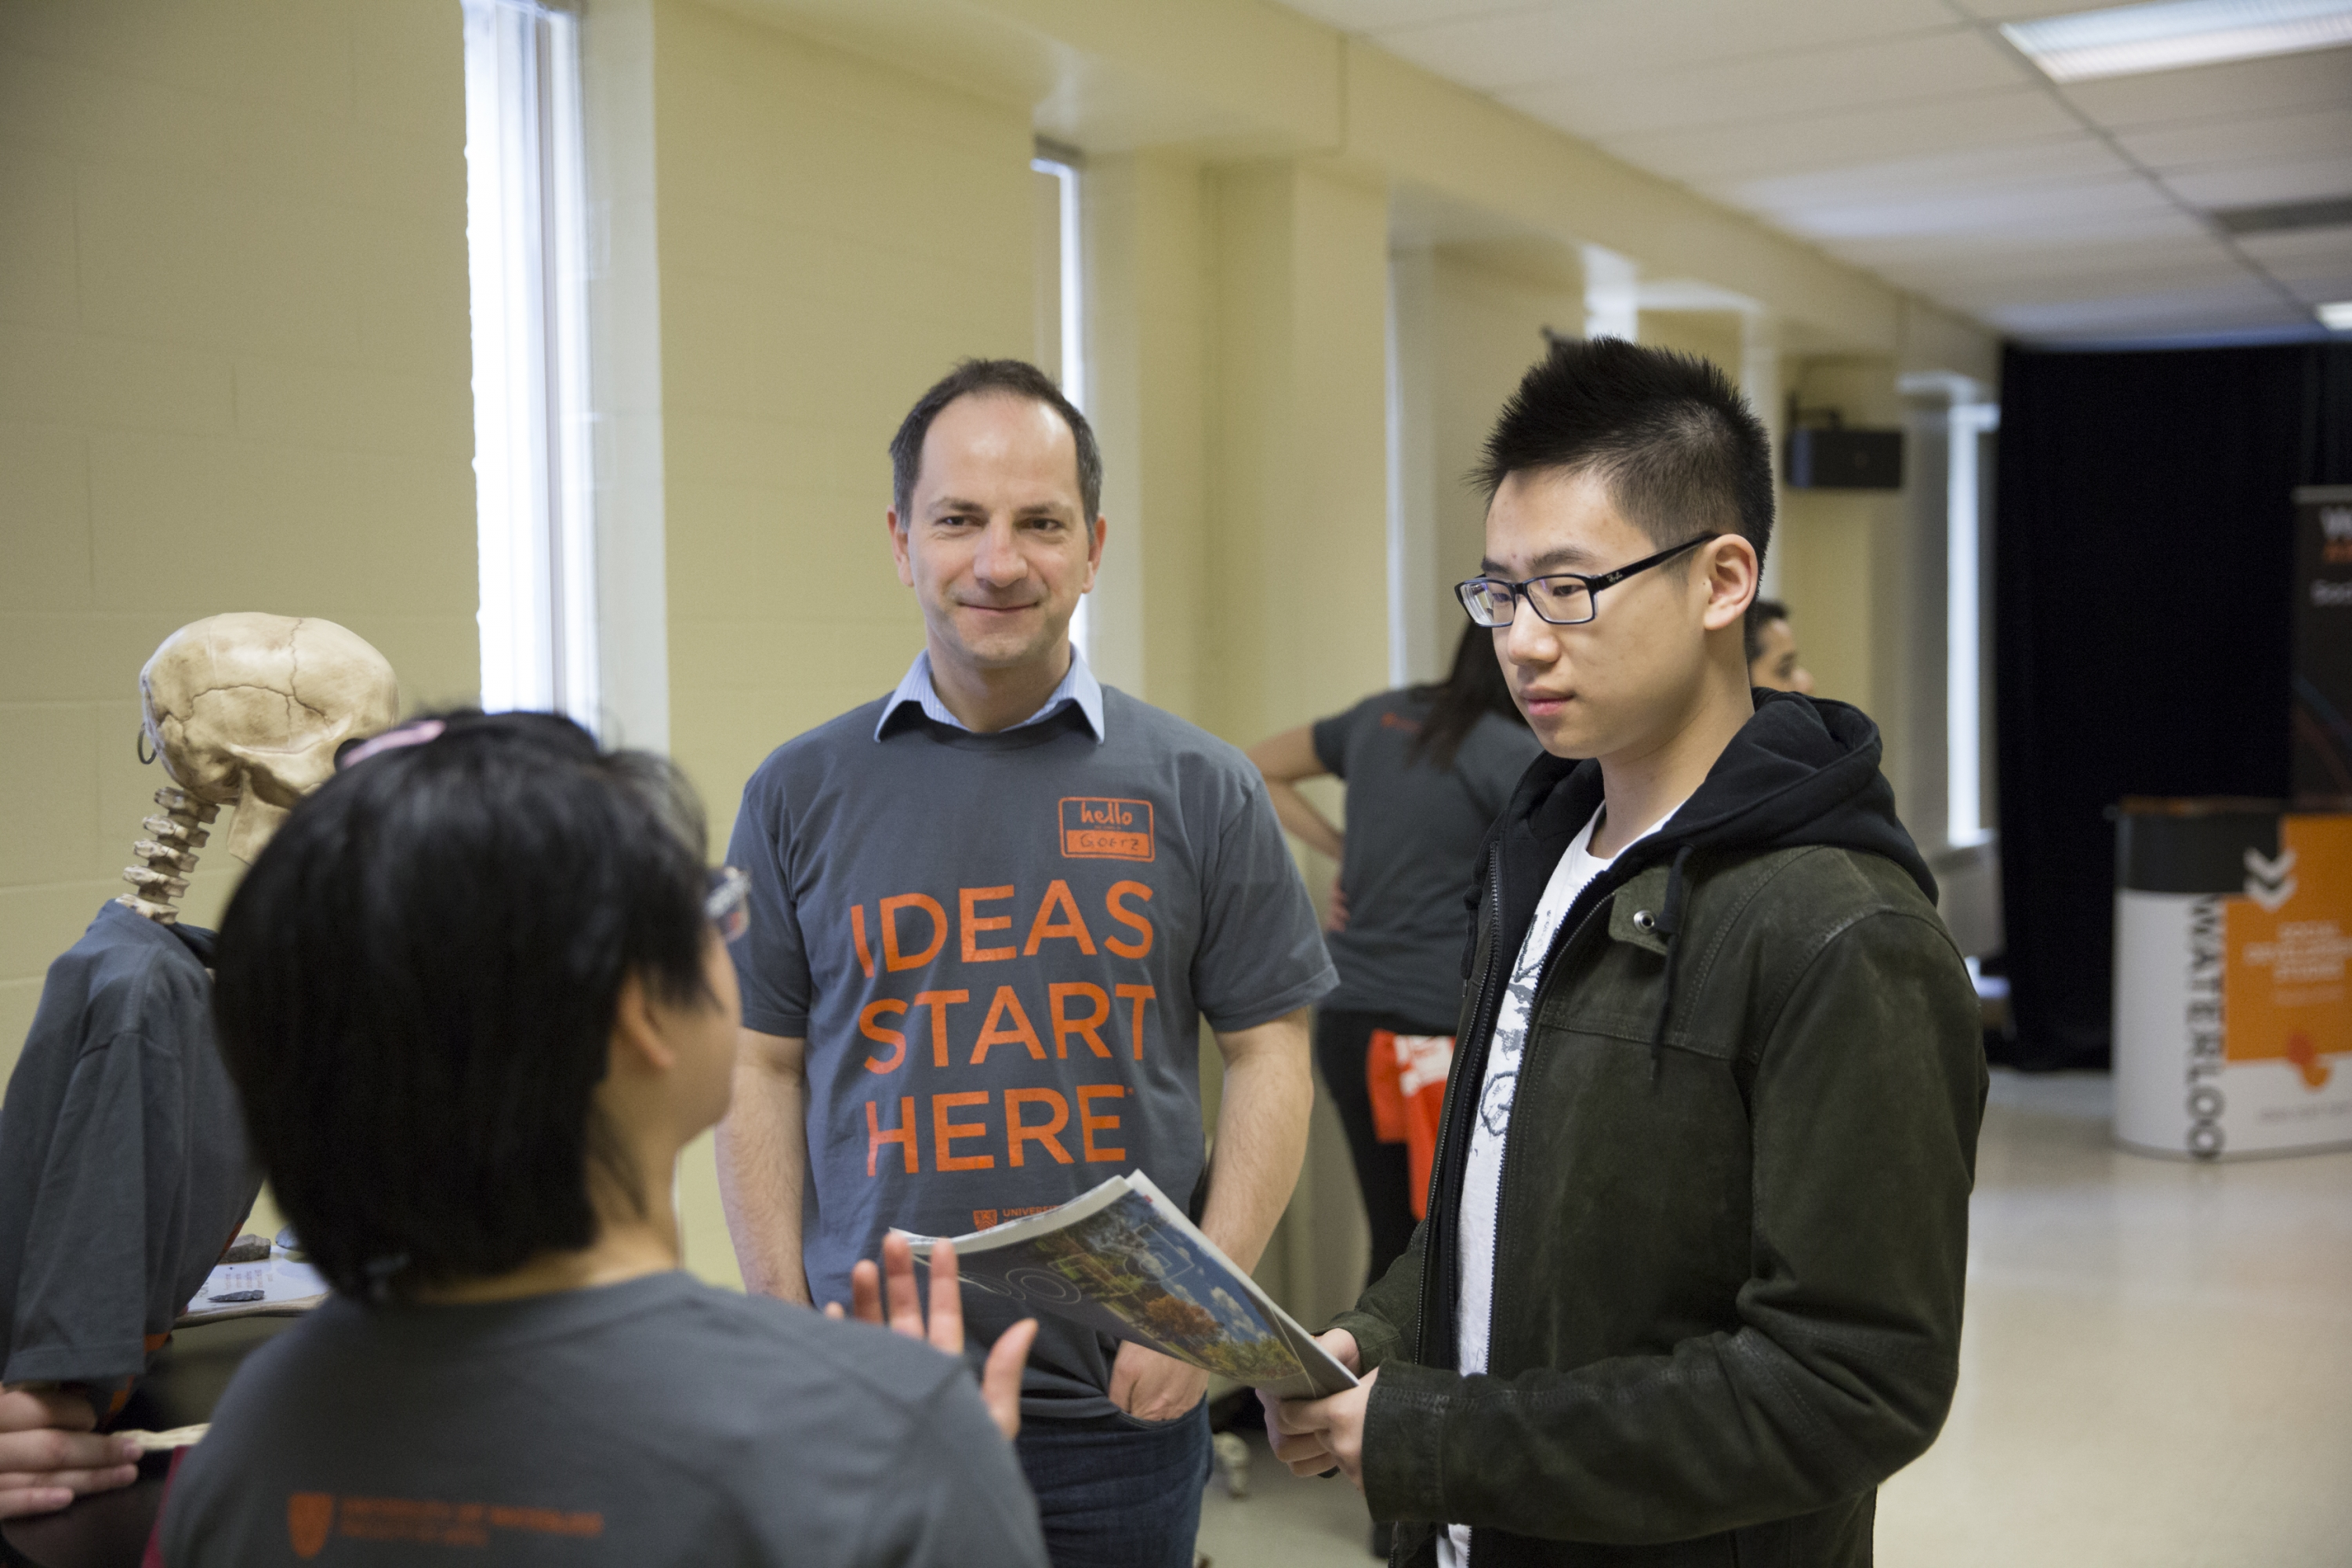 Dr. Götz Hoeppe and current student talking to prospective student